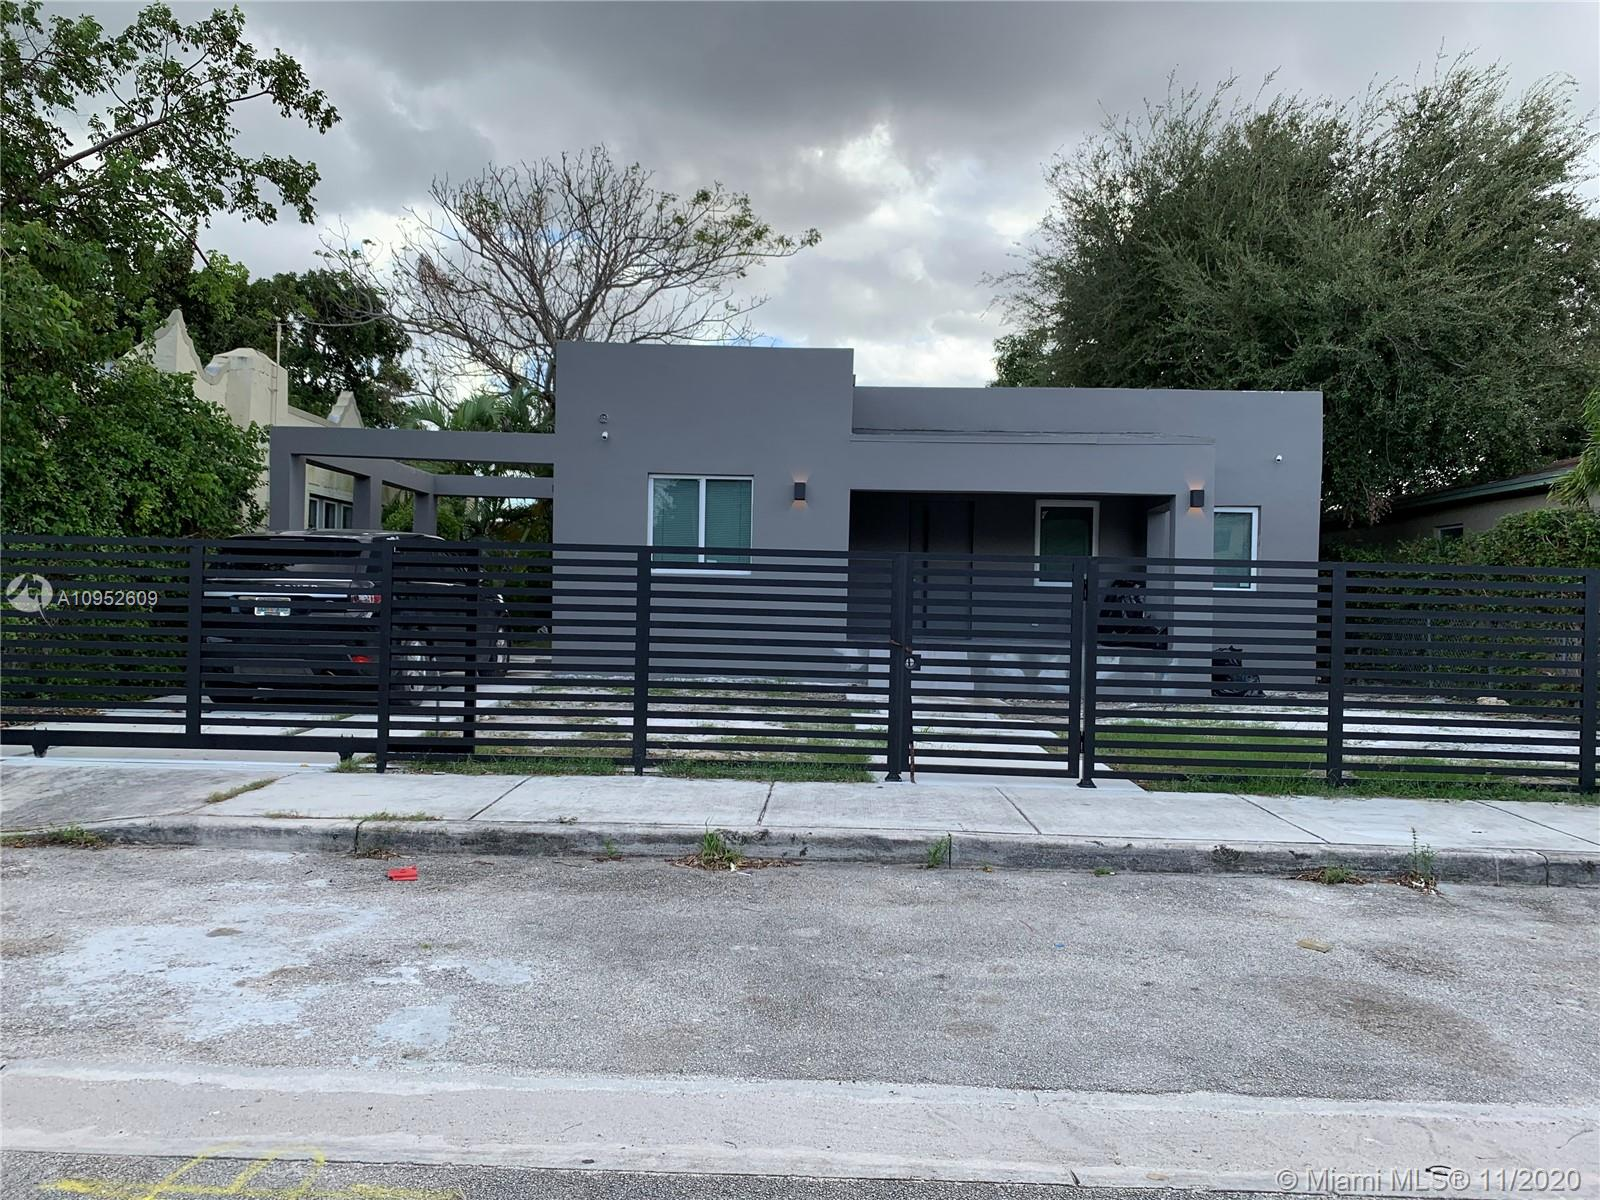 ALL COMPLETE REMODELED HOME, BETTER THAN NEW, INCLUDE TOP OF THE LINE FINISH, ALLN NEW APPLIANCES, ROOF, BATHS, ELECTRIC, PLUMBING, FLOORS ETC.  MODERN MINIMALISTIC DESIGN, IMPACT WINDOWS, SMART HOME: LED LIGHTS, SOUND SYSTEM, ALARM, LOCKS, SECURITY VIDEO SYSTEM, AC ETC. 